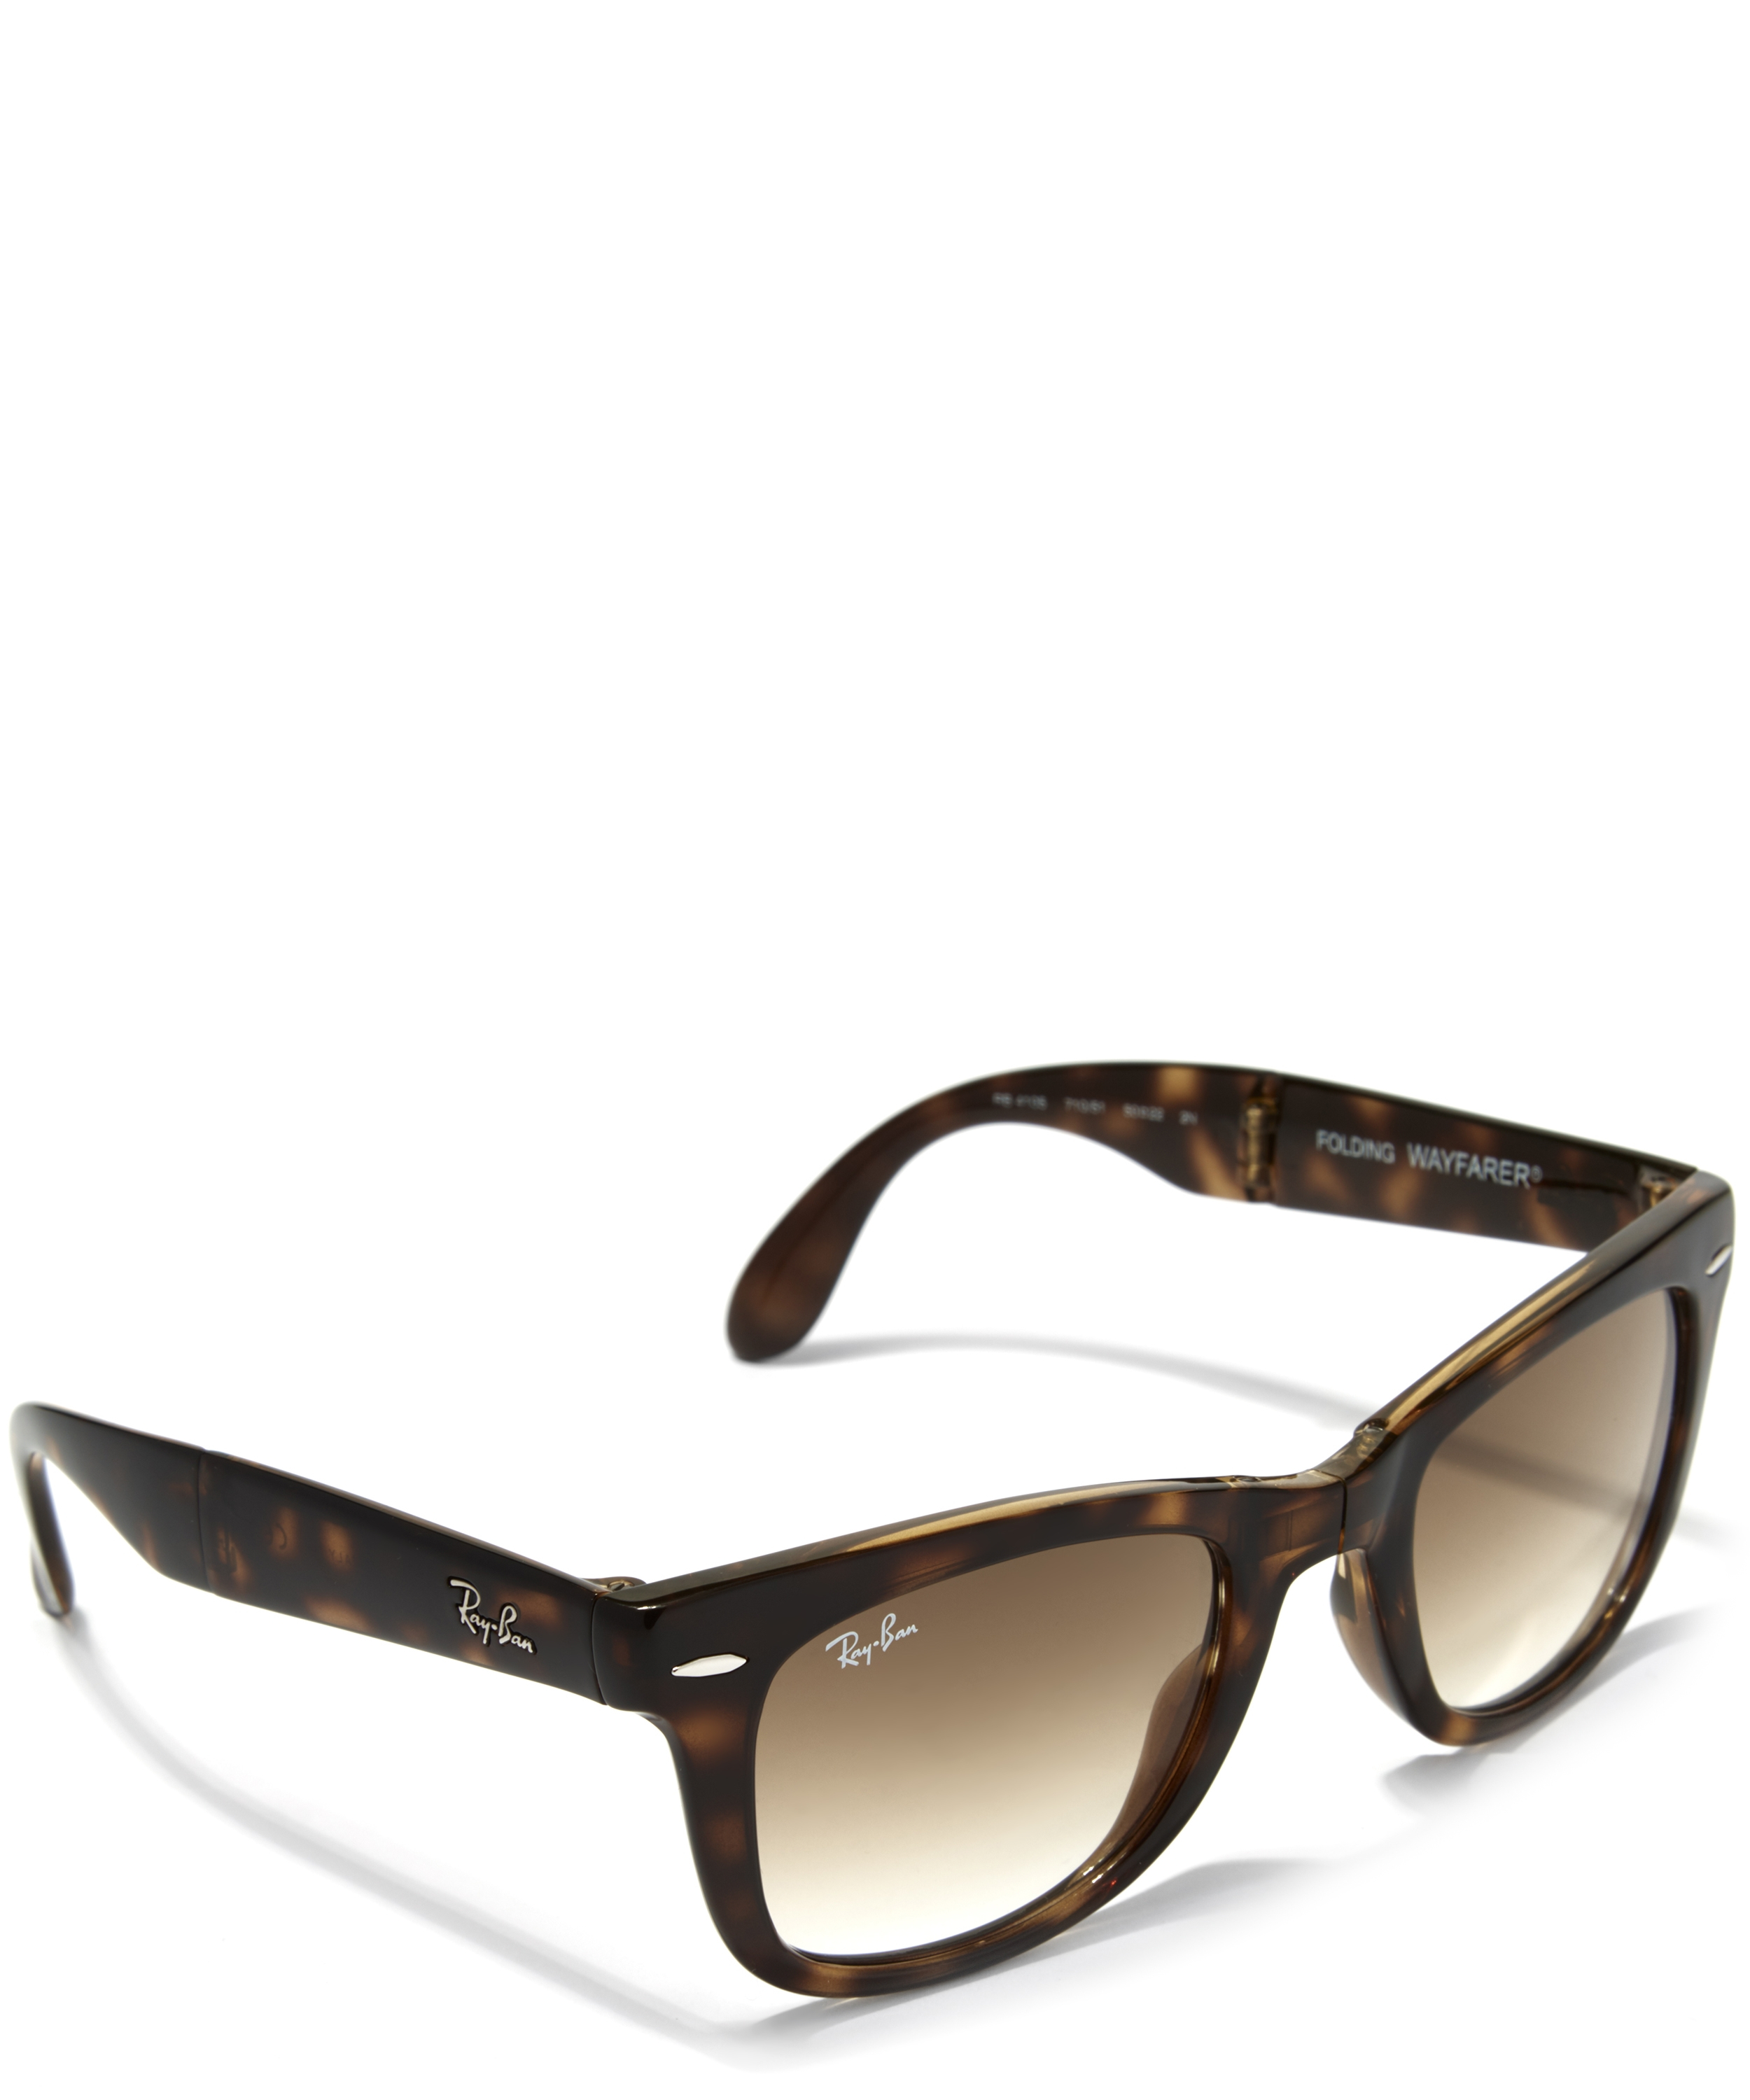 Test Optiker 2015 Folding Wayfarer Brown Polarized Louisiana Bucket Brigade